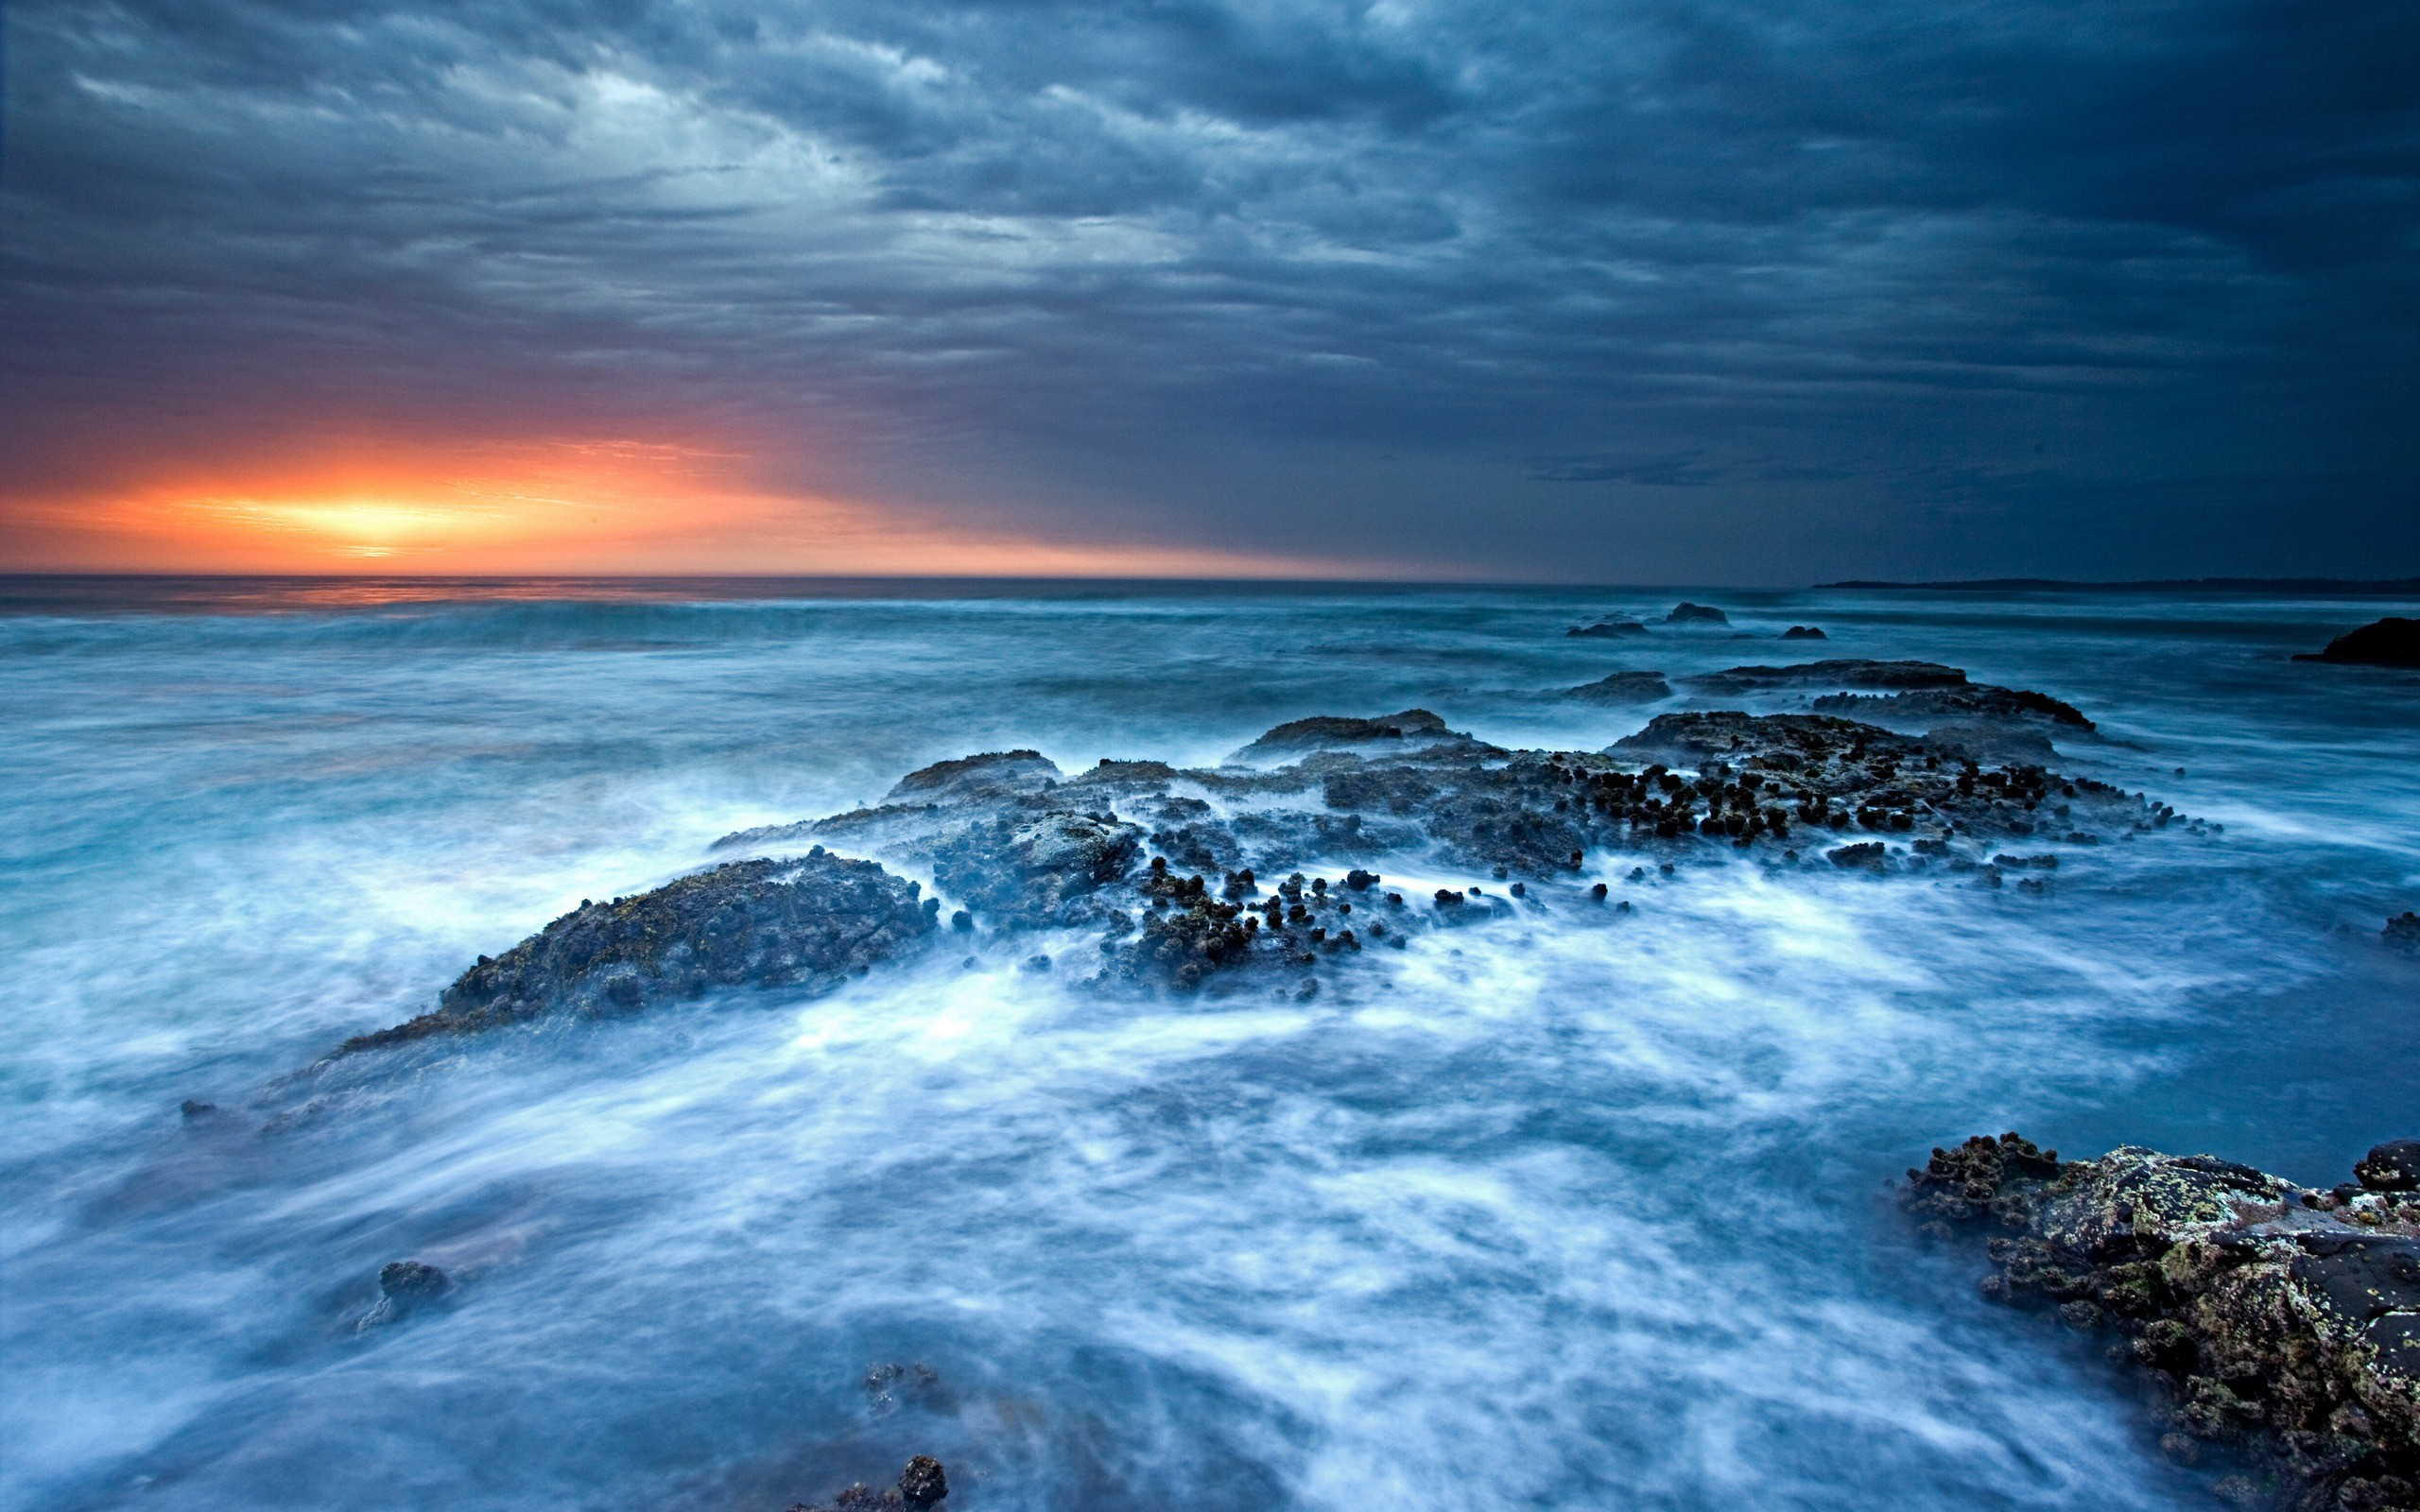 Ocean Waves Sunset Wallpapers   First HD Wallpapers 2560x1600